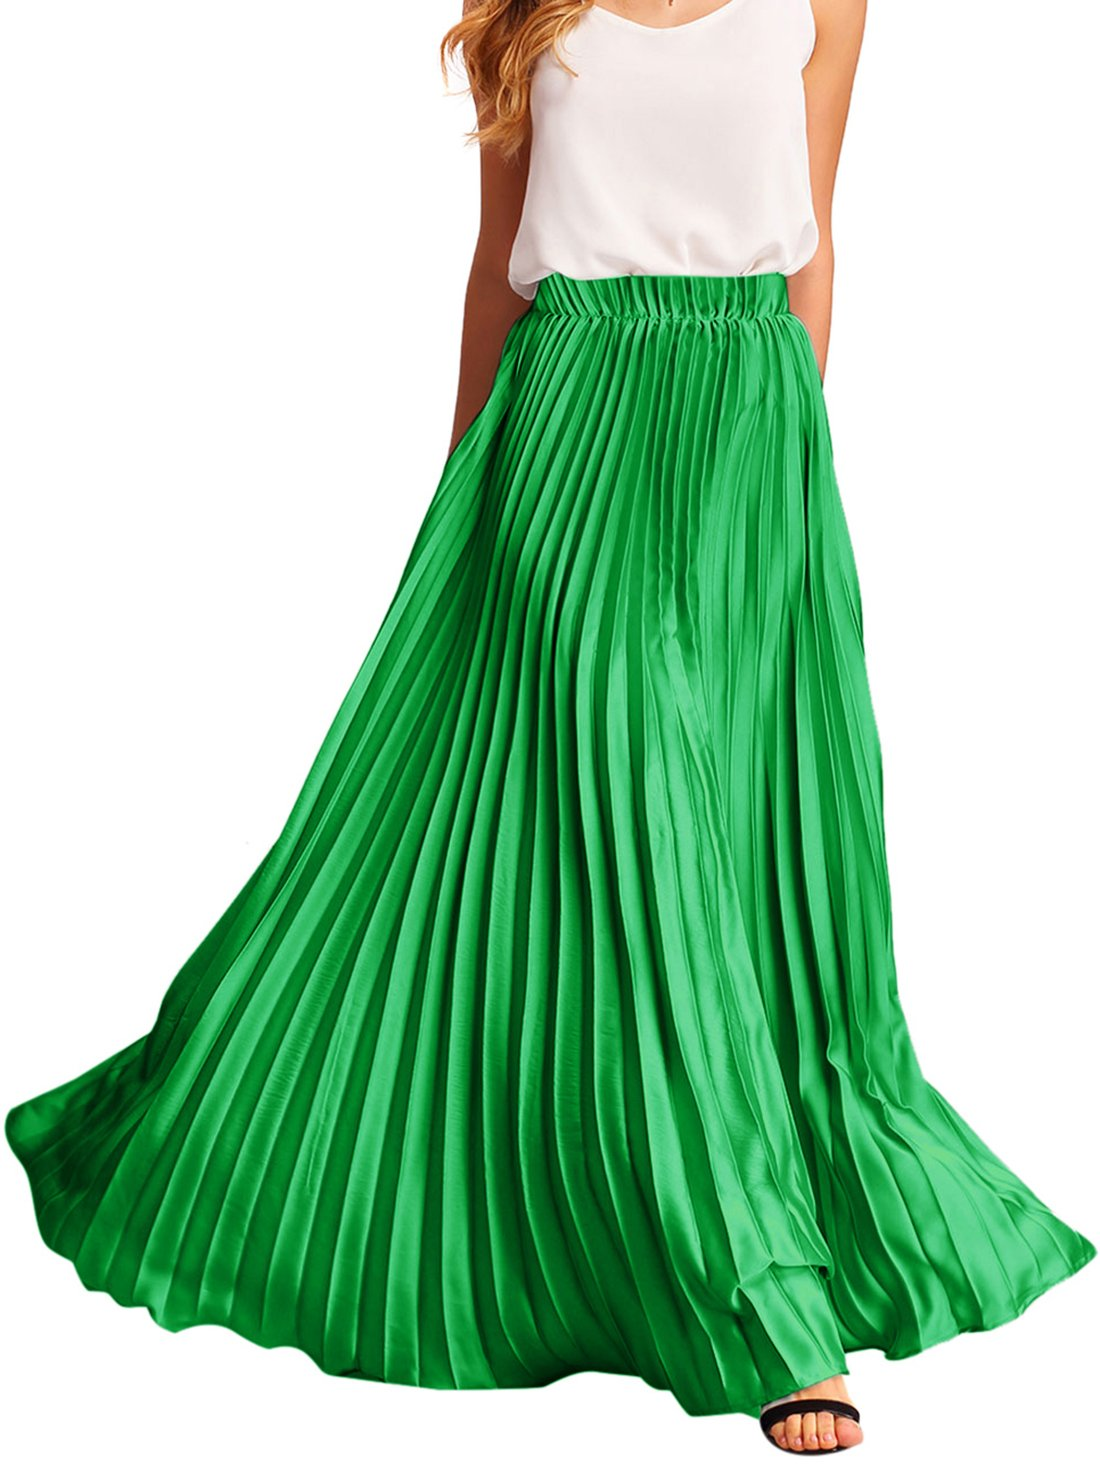 Romwe Women's Retro Vintage Summer Chiffon Pleat Maxi Long Skirt